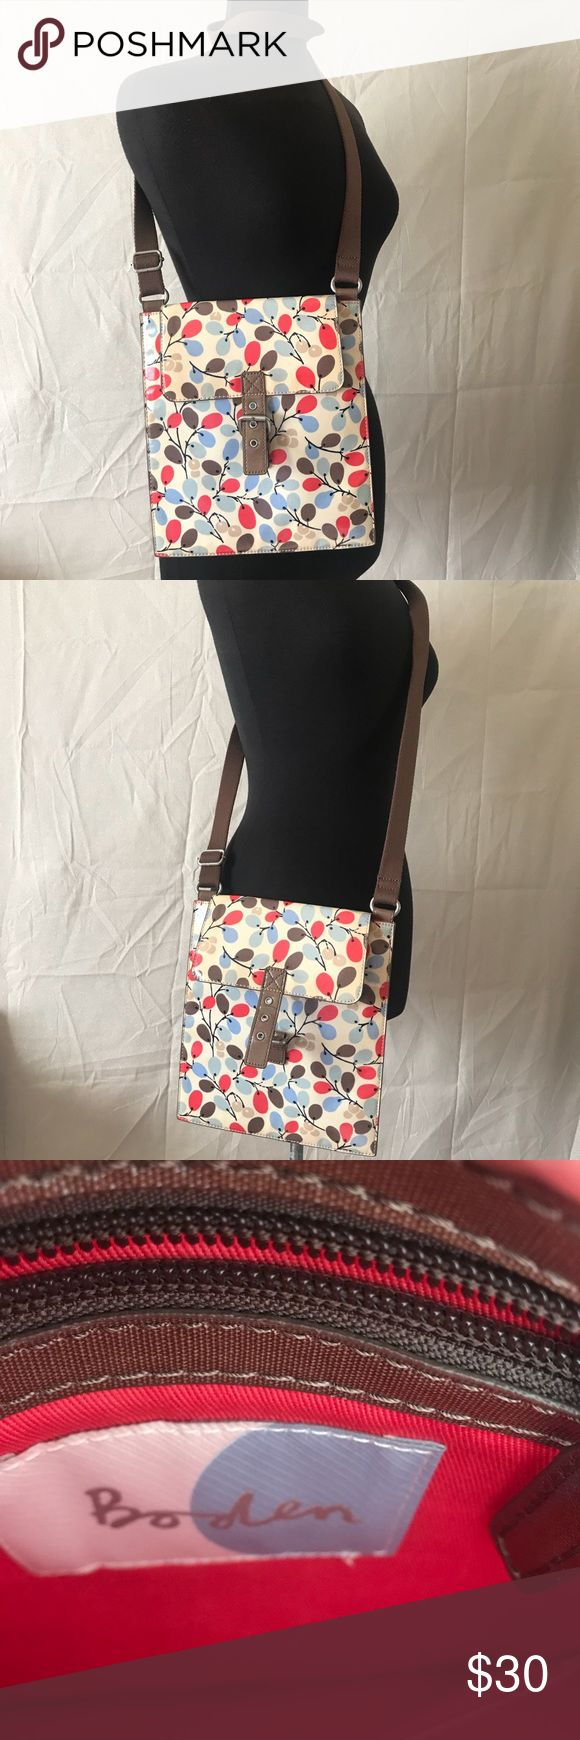 Boden Oil cloth cross body bag Super cute. In great condition. Cross body bag with adjustable straps. Oil cloth pvc. Boden Bags Crossbody Bags